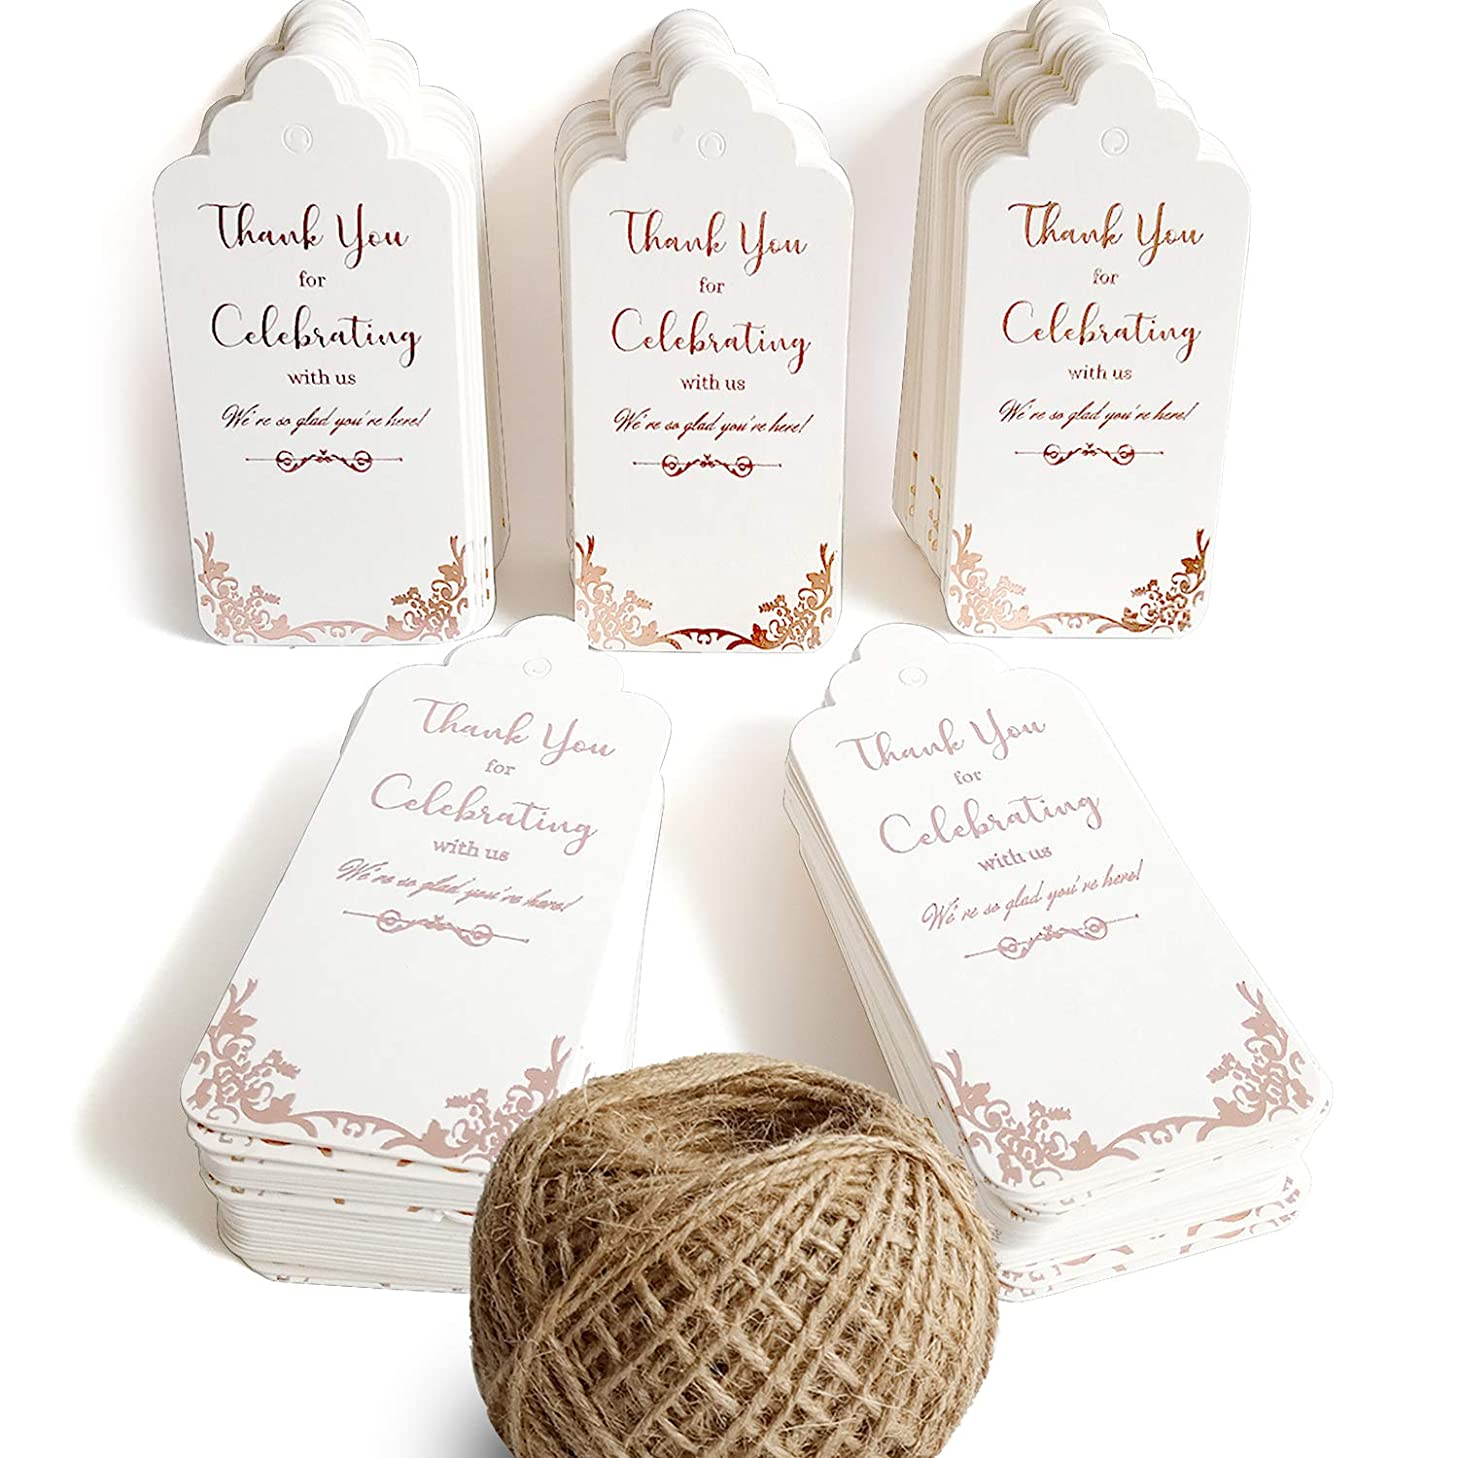 100 Glitter Rose Gold Paper Gift Tags with String(Extra Long 328Feet Natural Jute Twine),Thank You Tags for Wedding Favors,Bridal Shower,Baby Shower Girl,Birthday,Graduation,Wine Bottle,Presents,Party